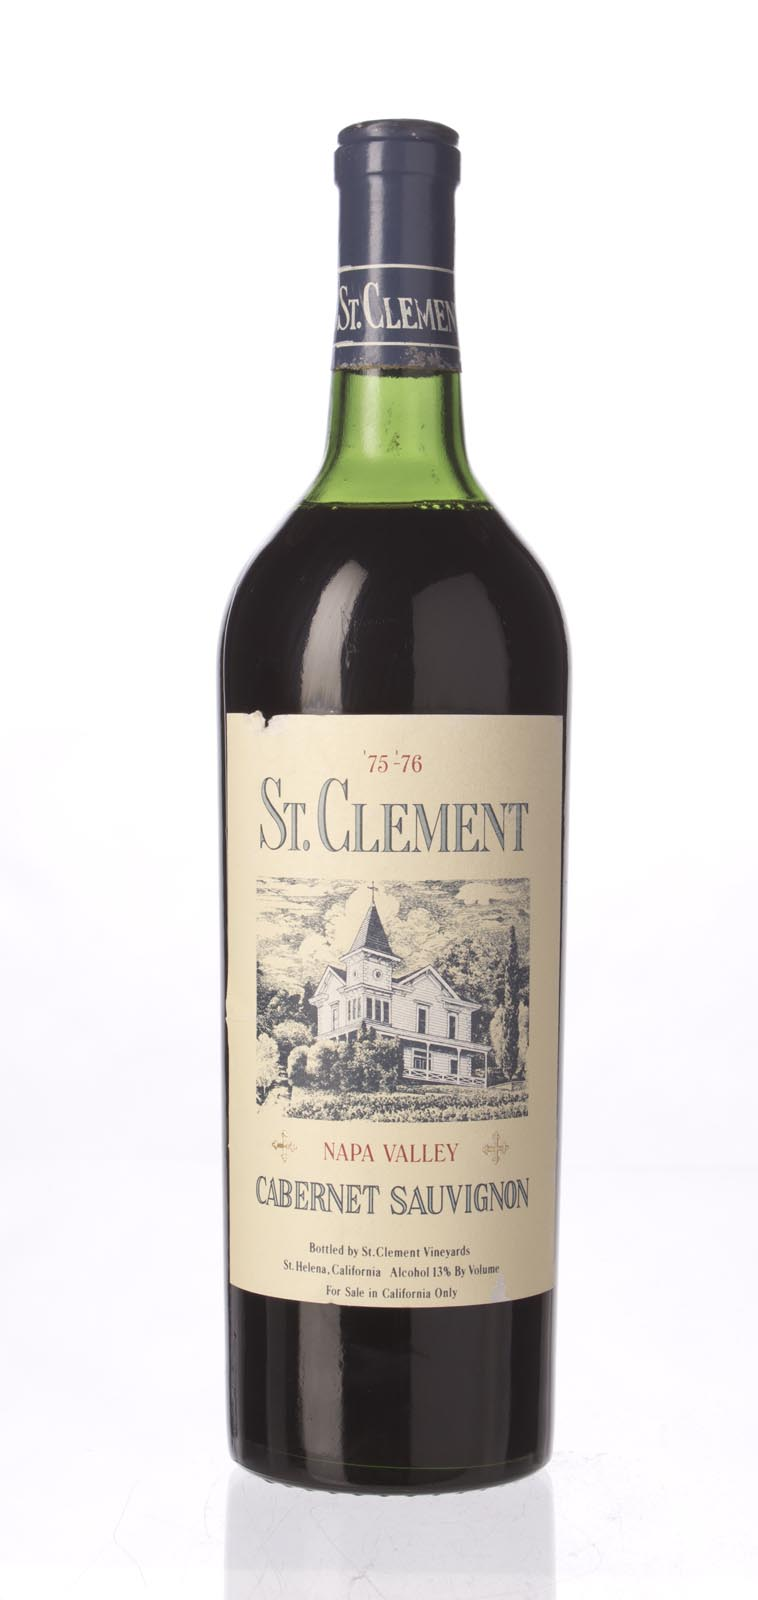 St. Clement Cabernet Sauvignon Napa Valley `75/76` N.V., 750mL () from The BPW - Merchants of rare and fine wines.